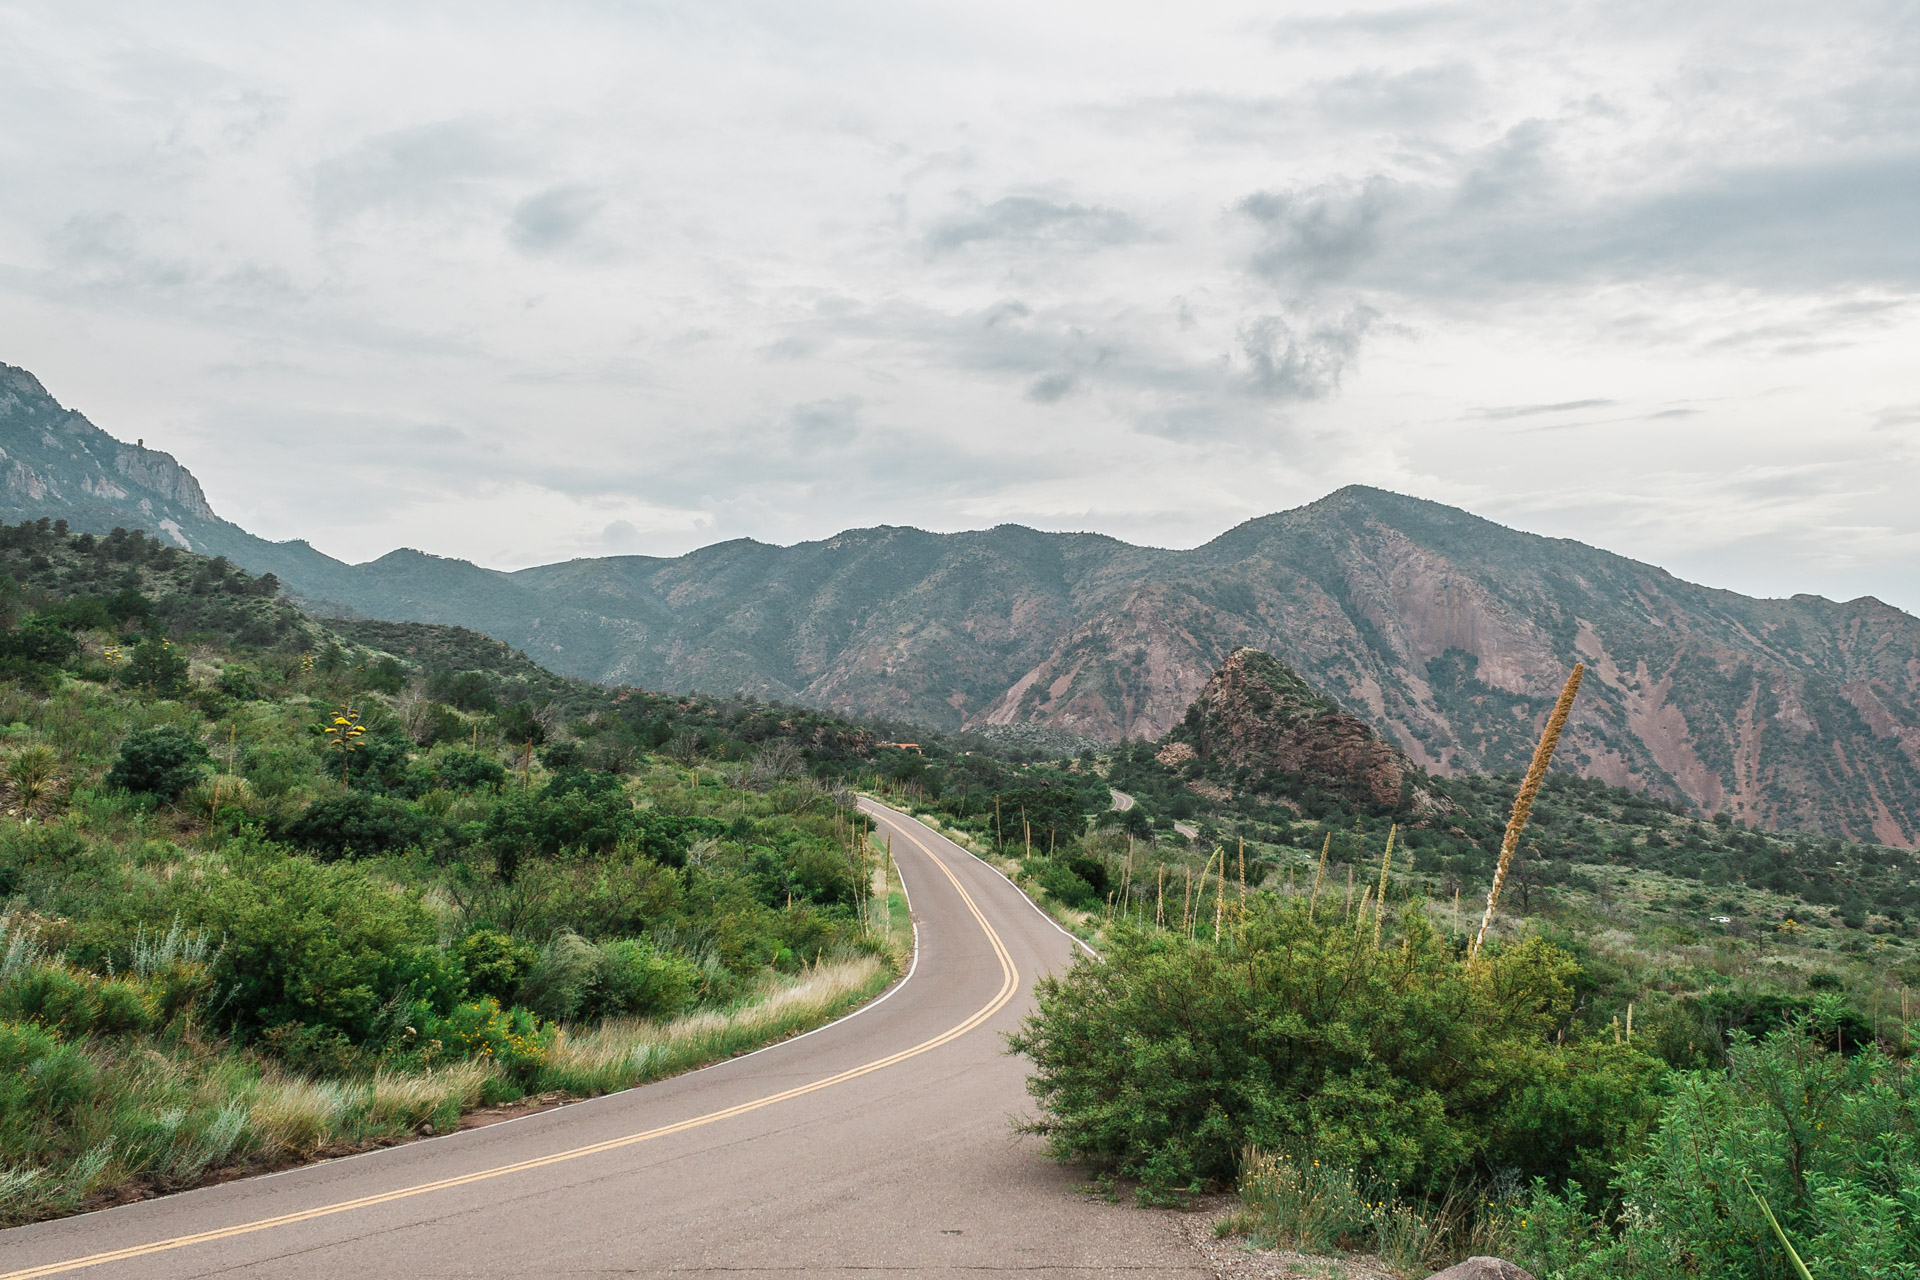 Behind The Road Trip Photos (big bend road)